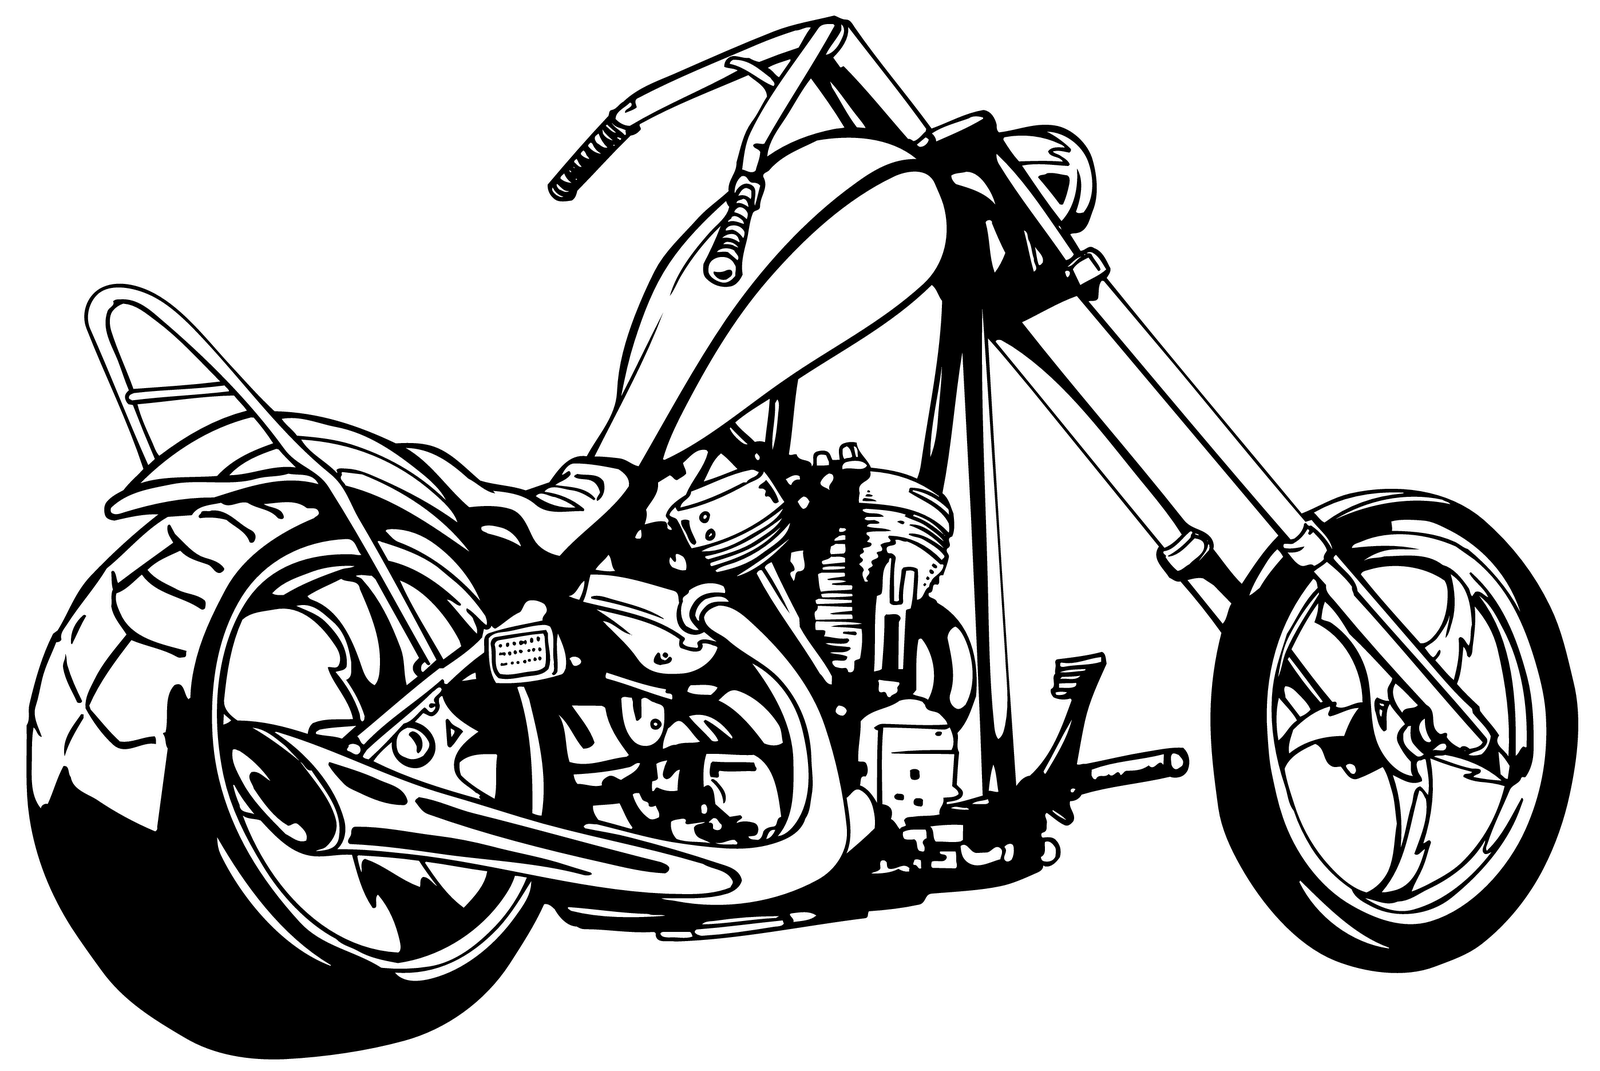 Chopper clipart Chopper Images chopper%20clipart Motorcycle Clipart